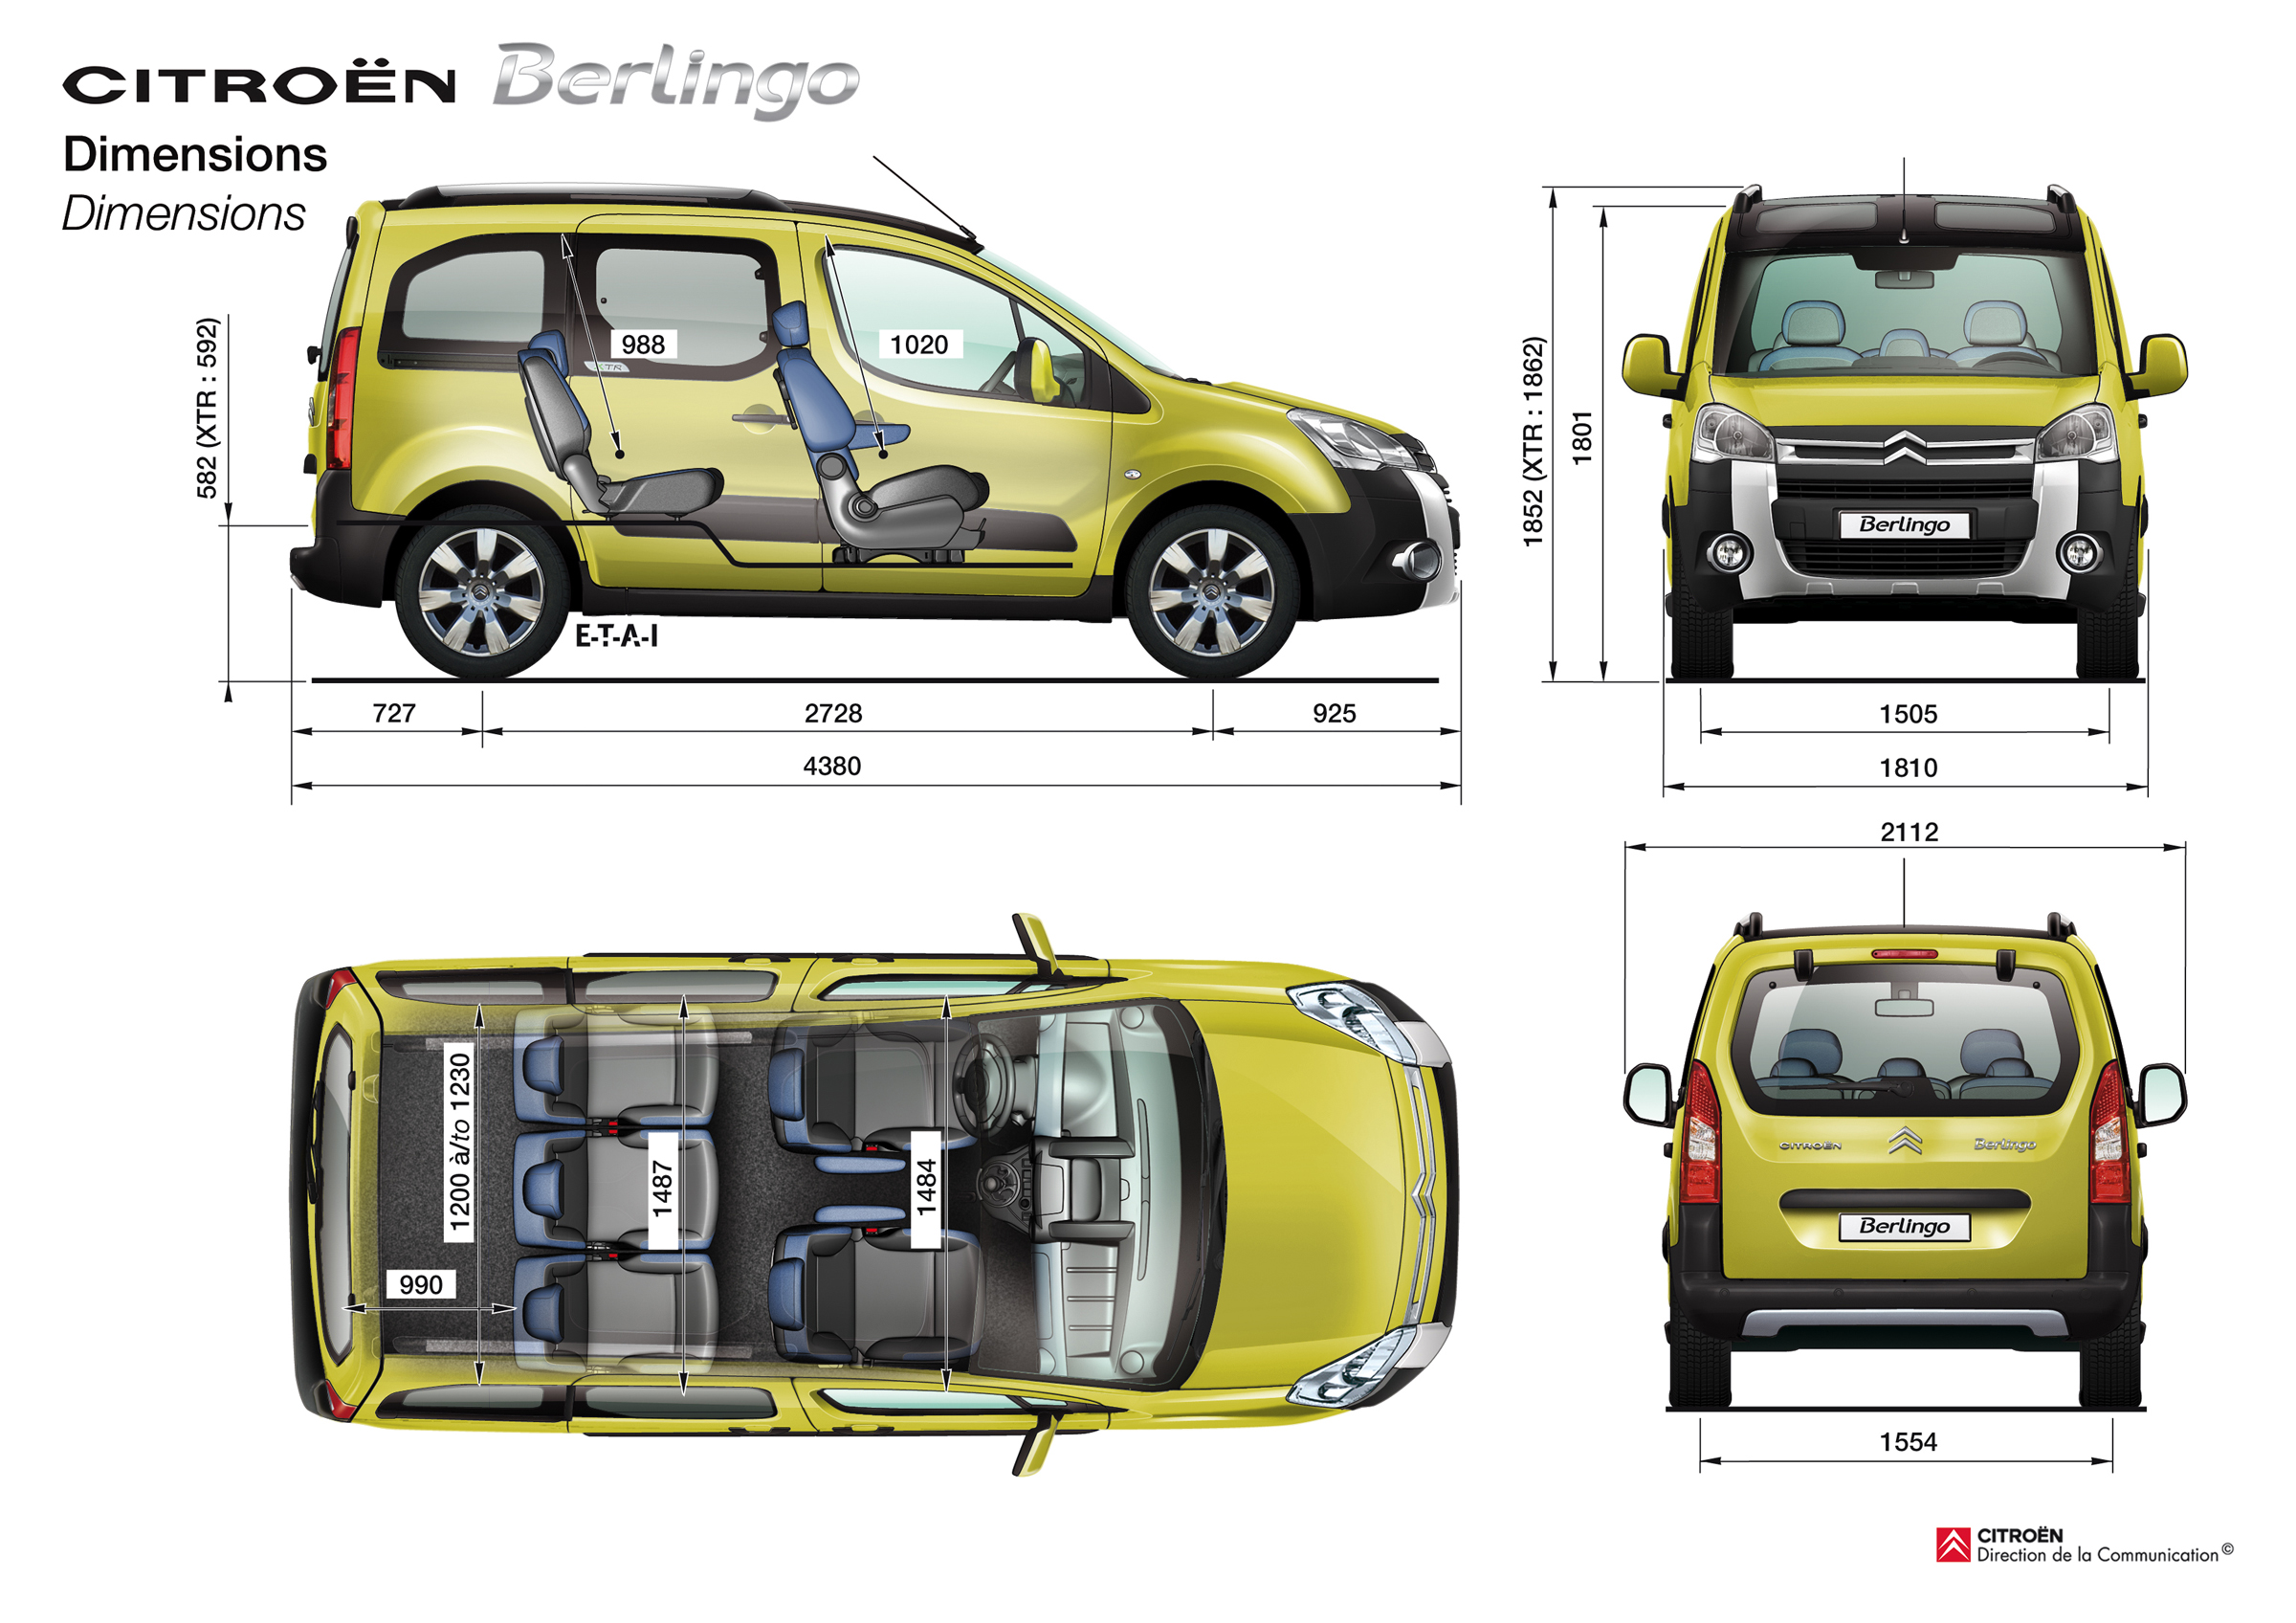 Citroen Berlingo #15